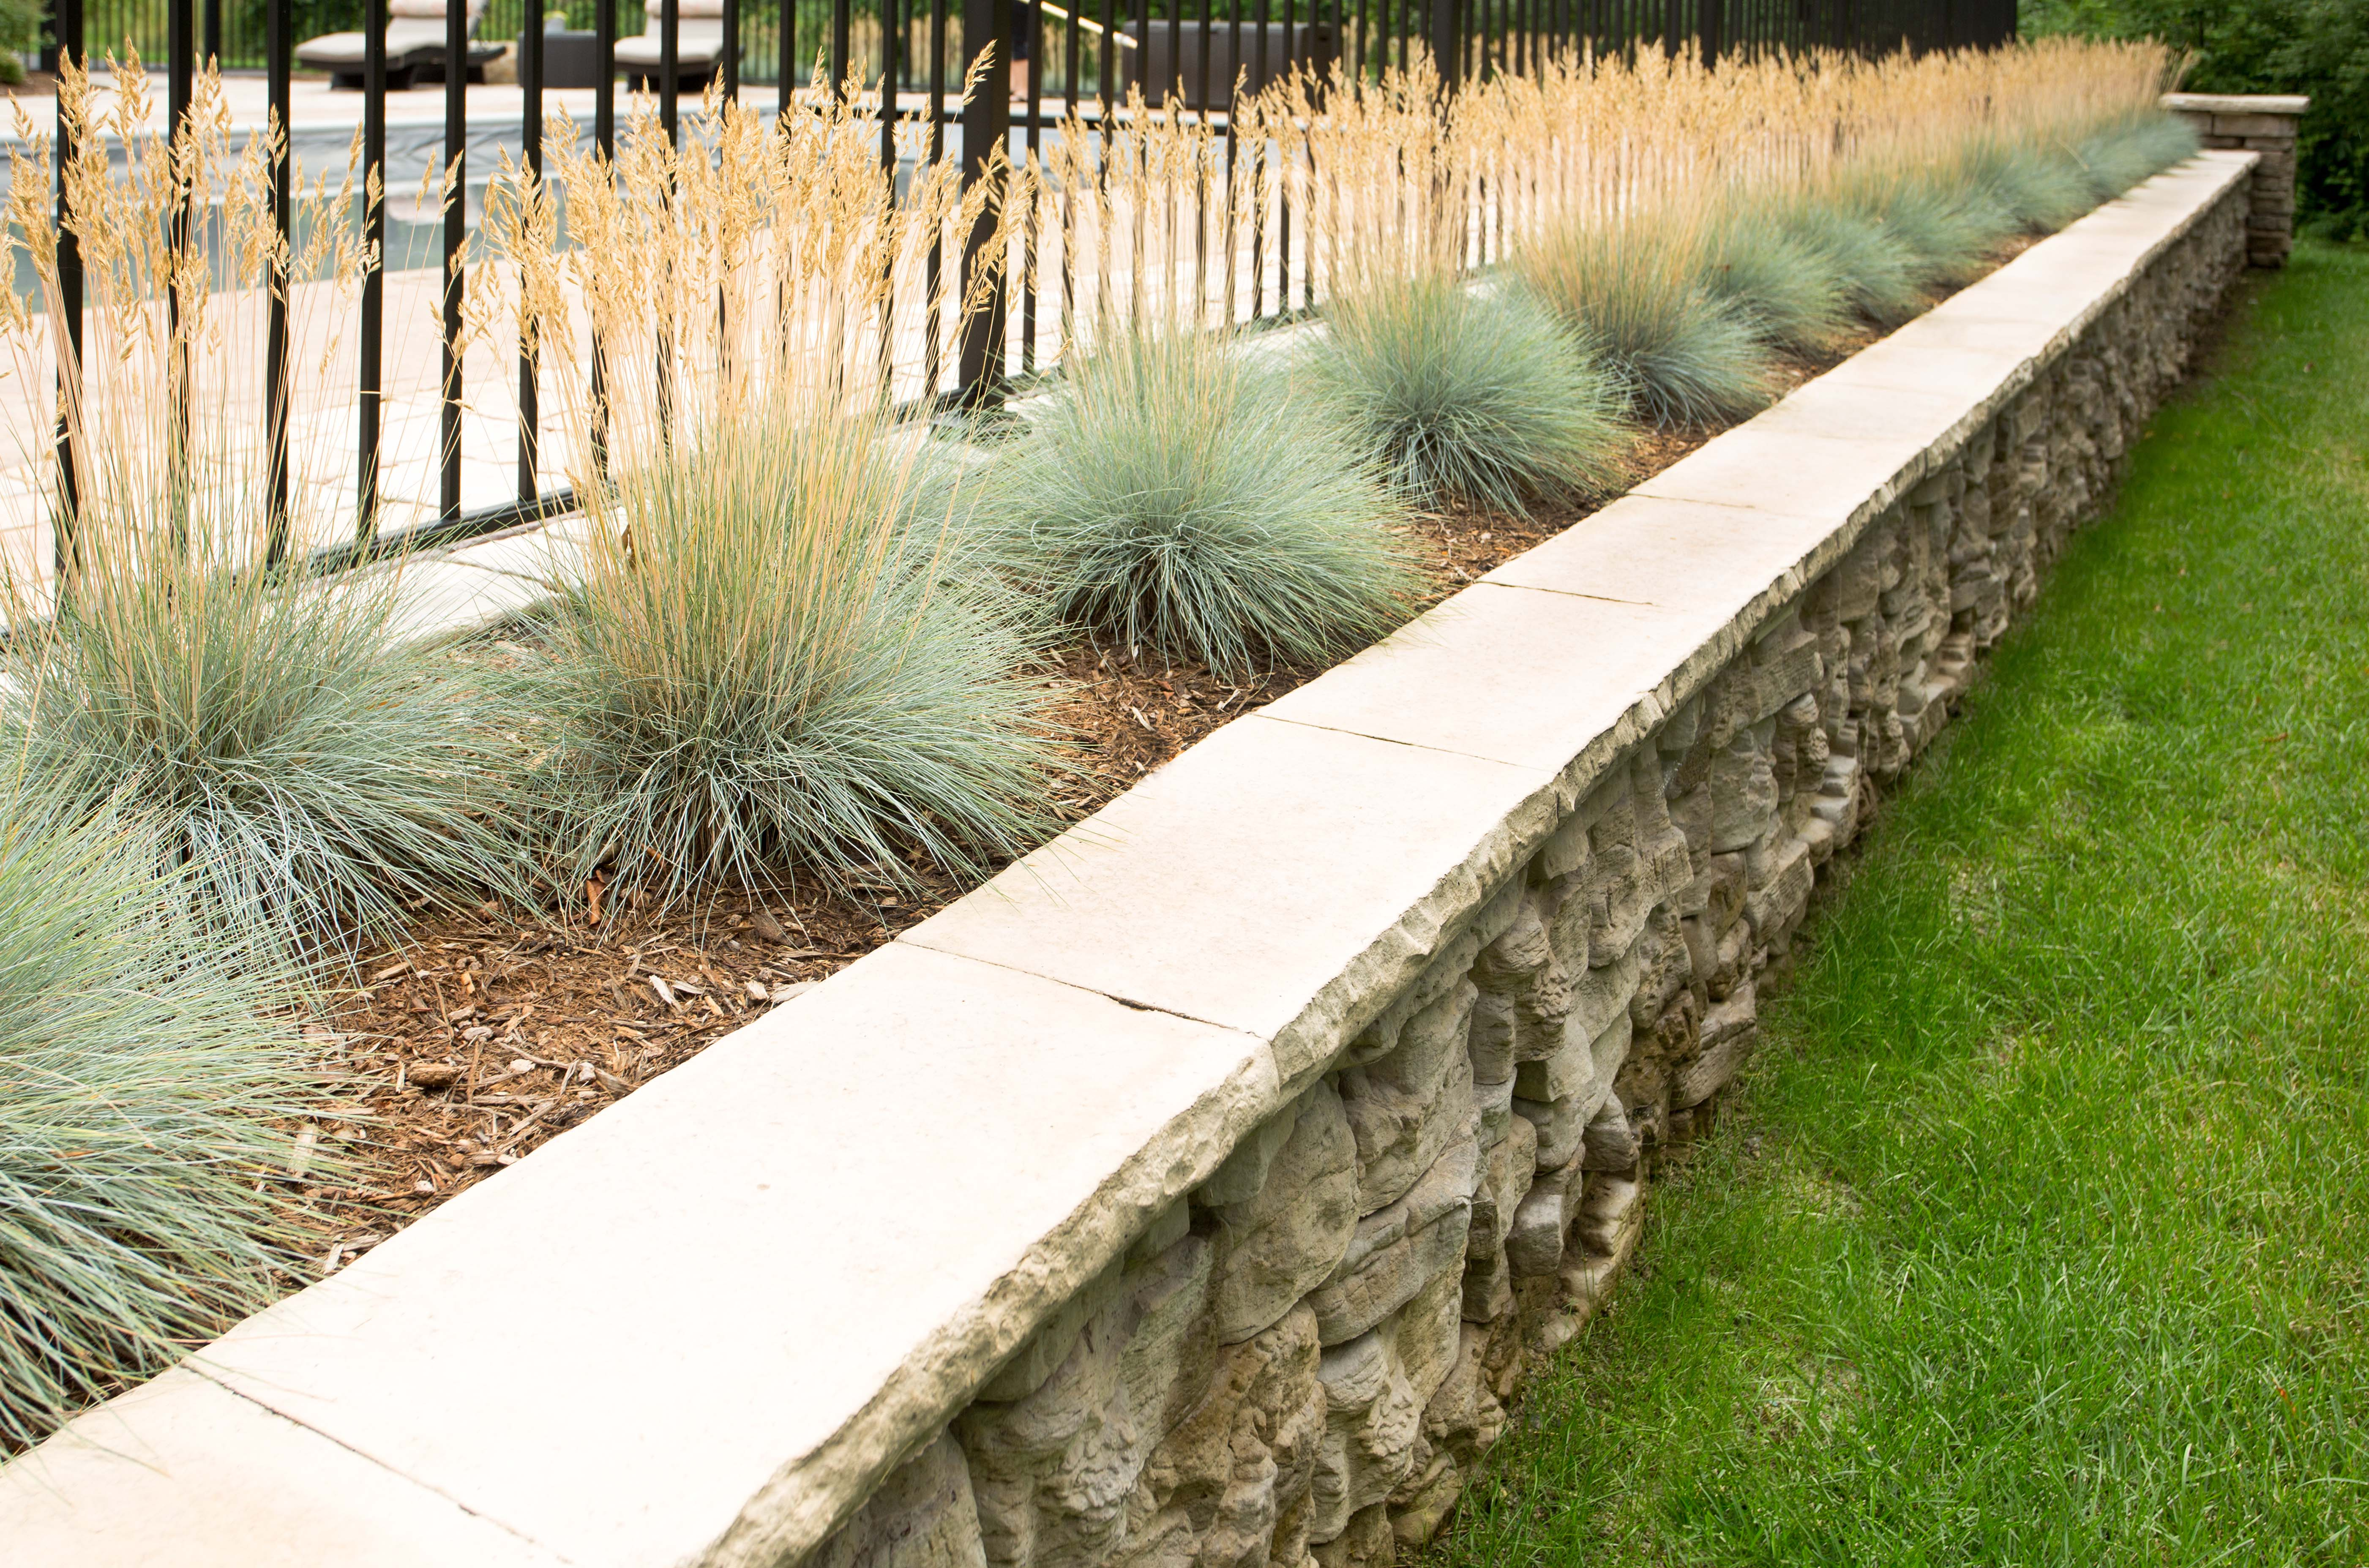 Concrete retaining wall with landscaping and a fence